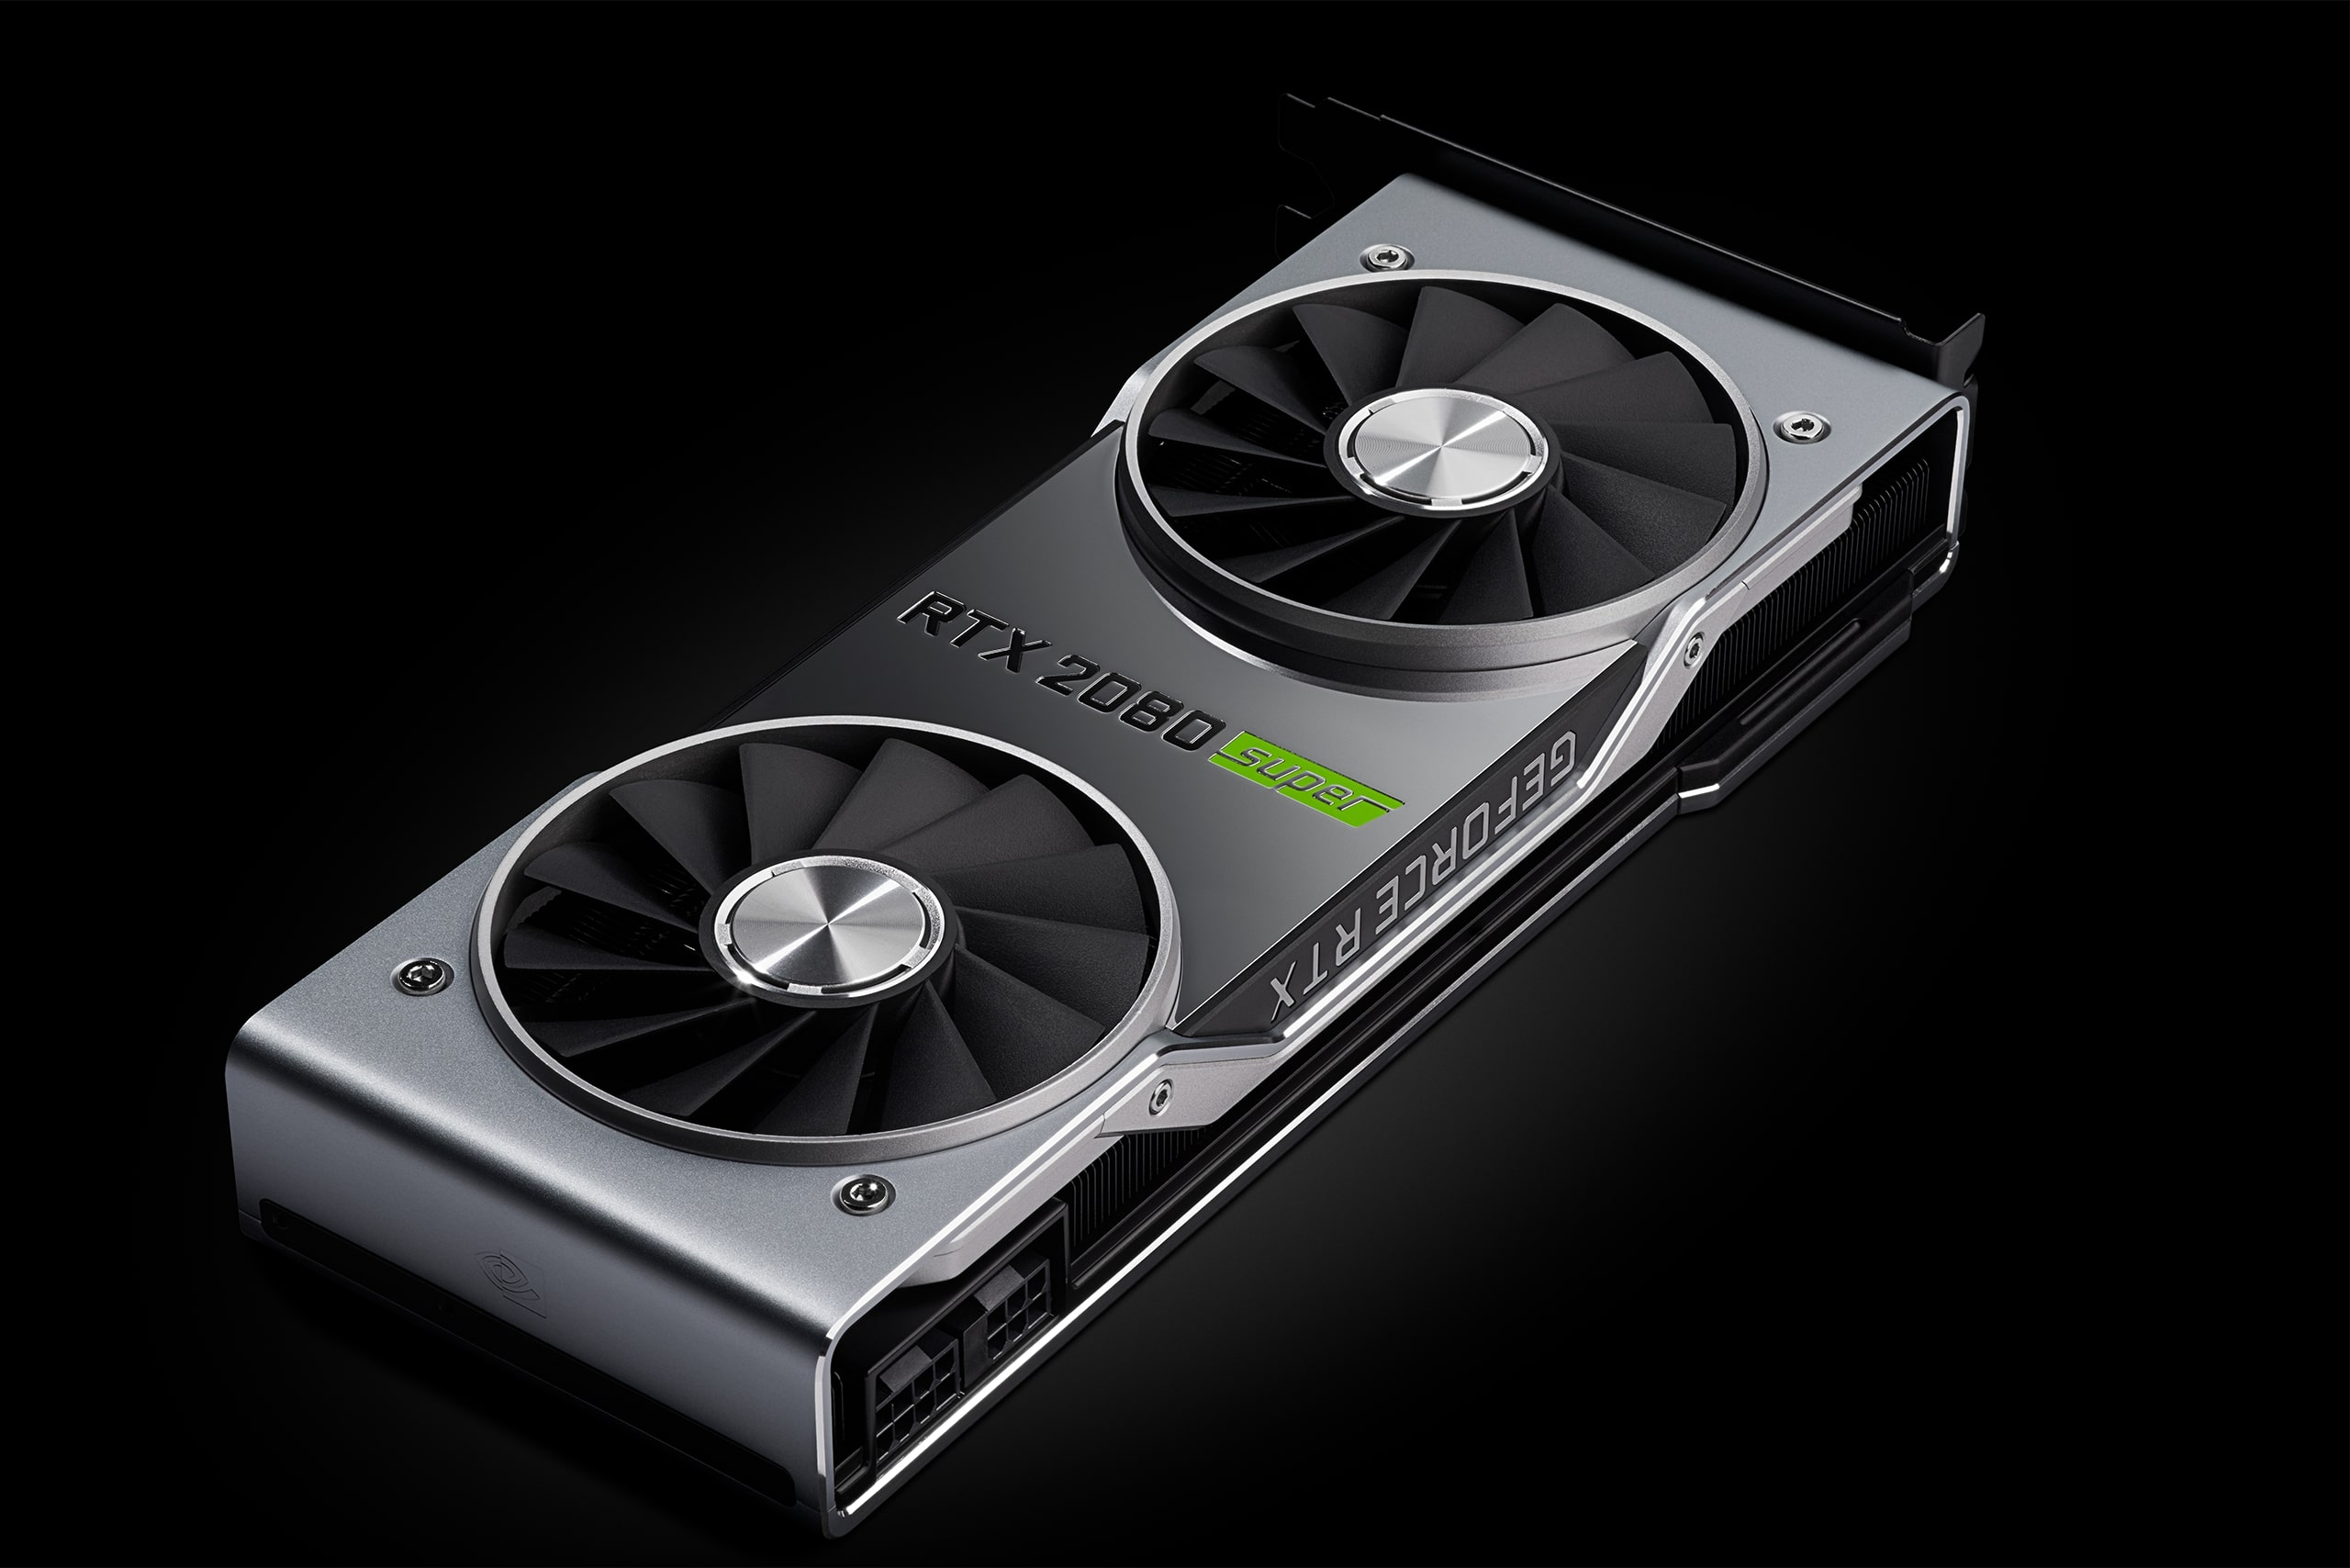 RTX 2080 Super matches the Titan V in leaked benchmark